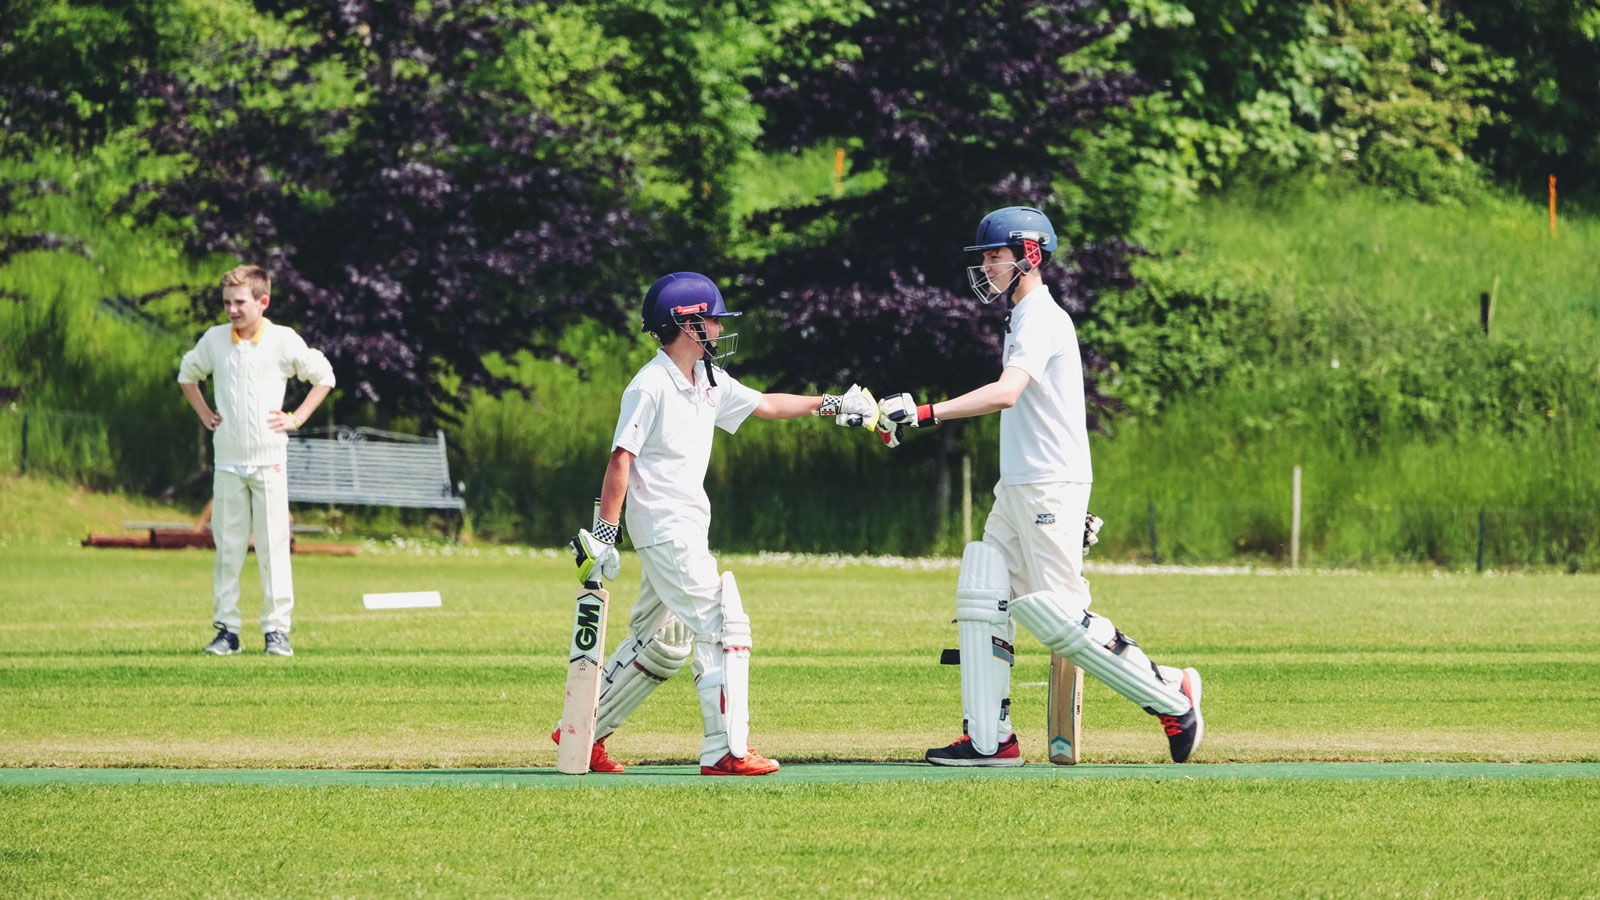 prep-cricket-fist-bump